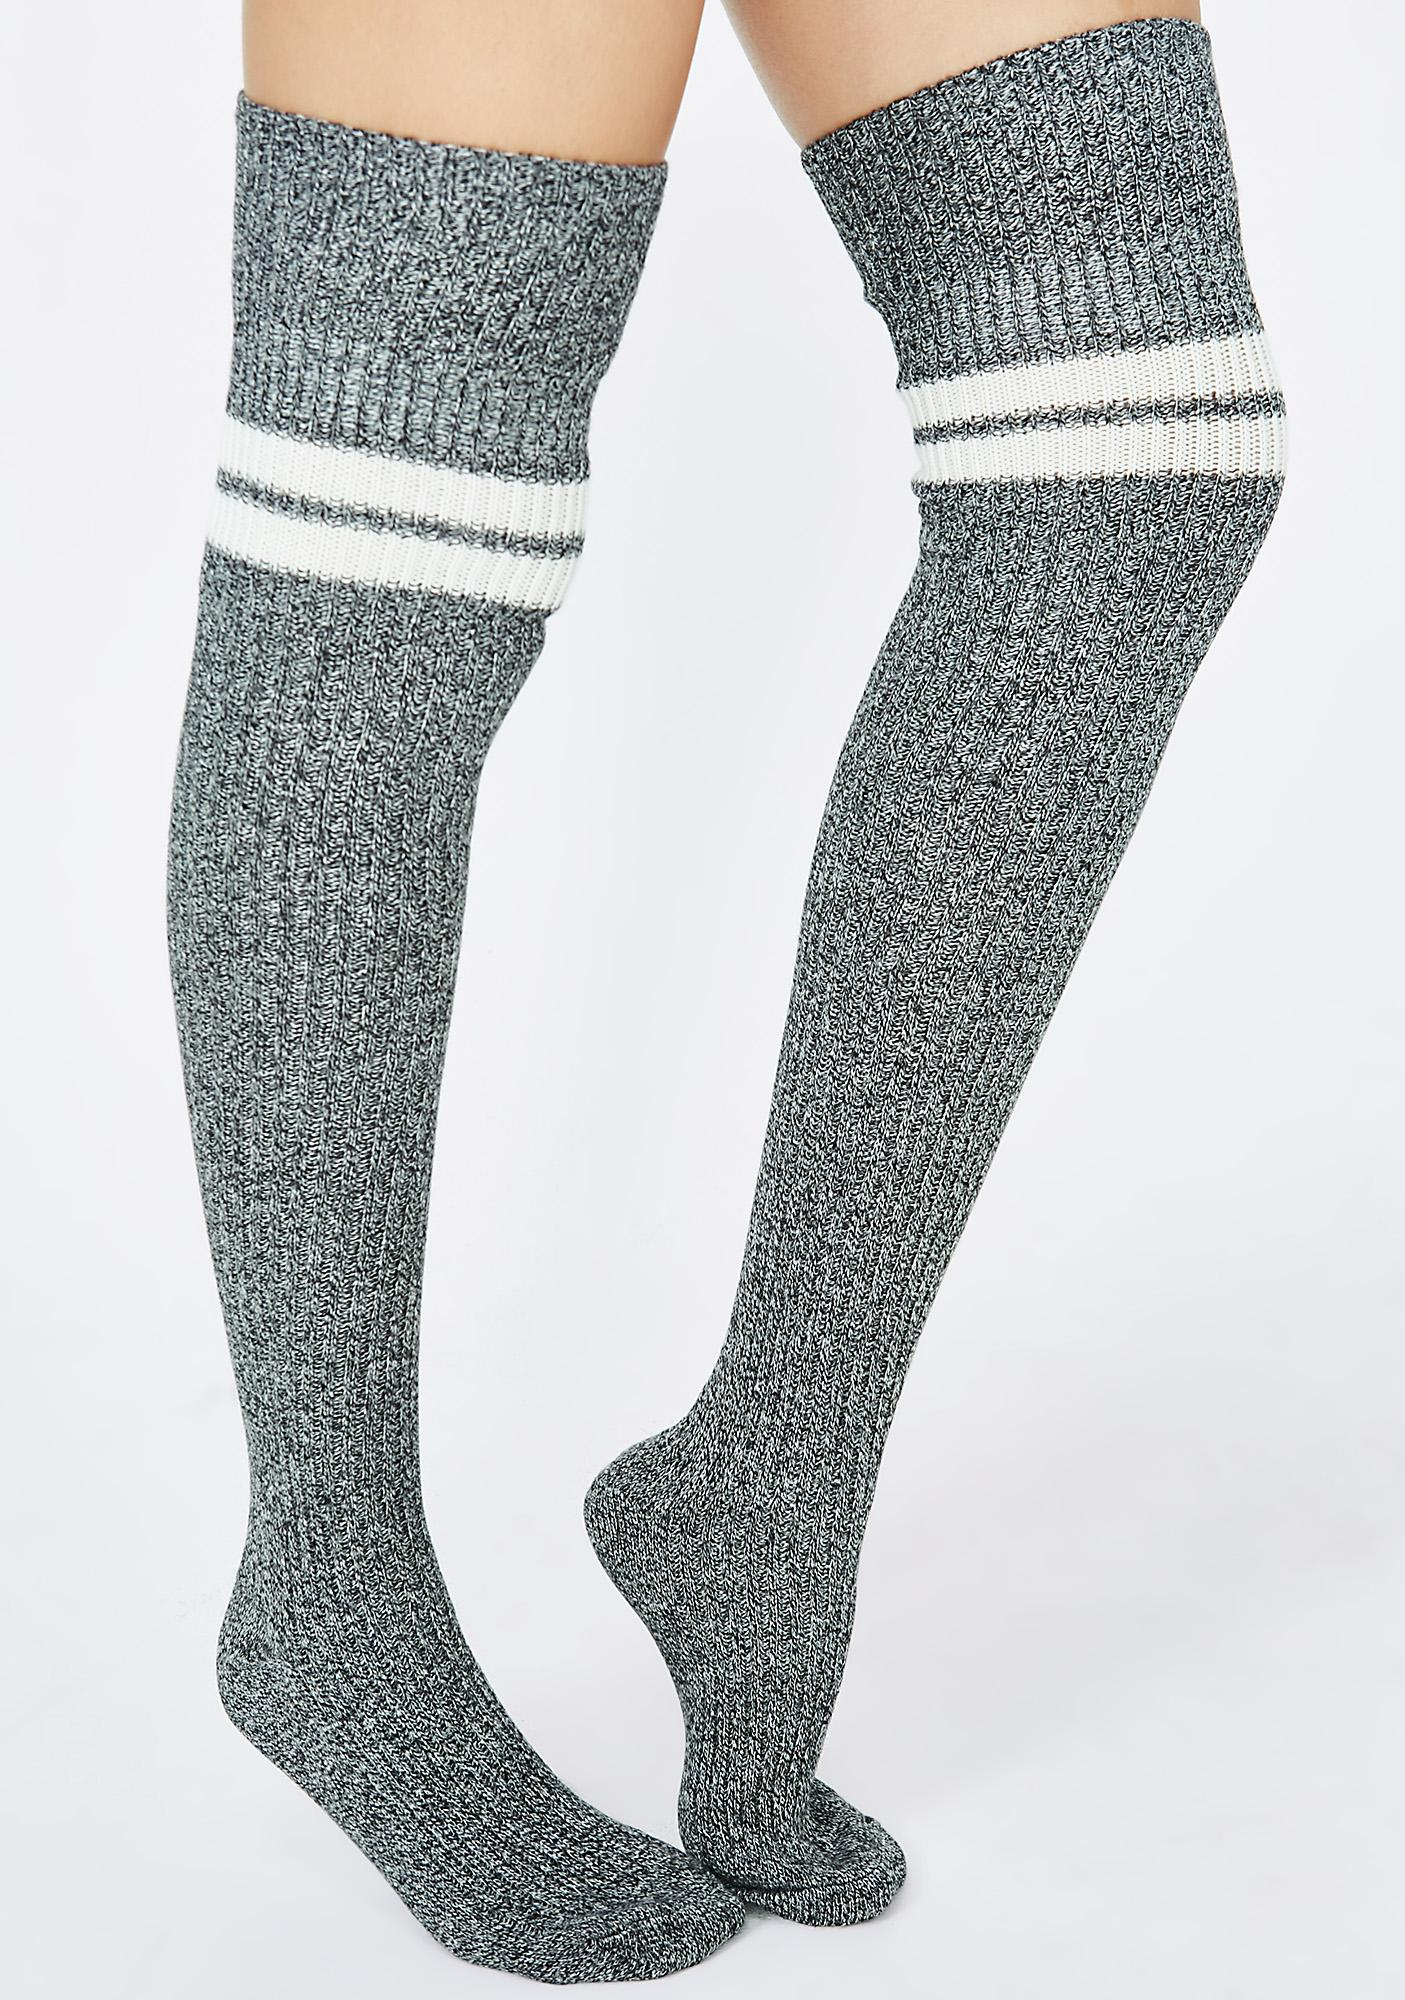 Gorgeous, thick ribbed thigh highs with a wonderful stretch that stay up and look great cuffed! Their terry-lined feet add extra warmth, comfort and cushiness. Made in the USA.